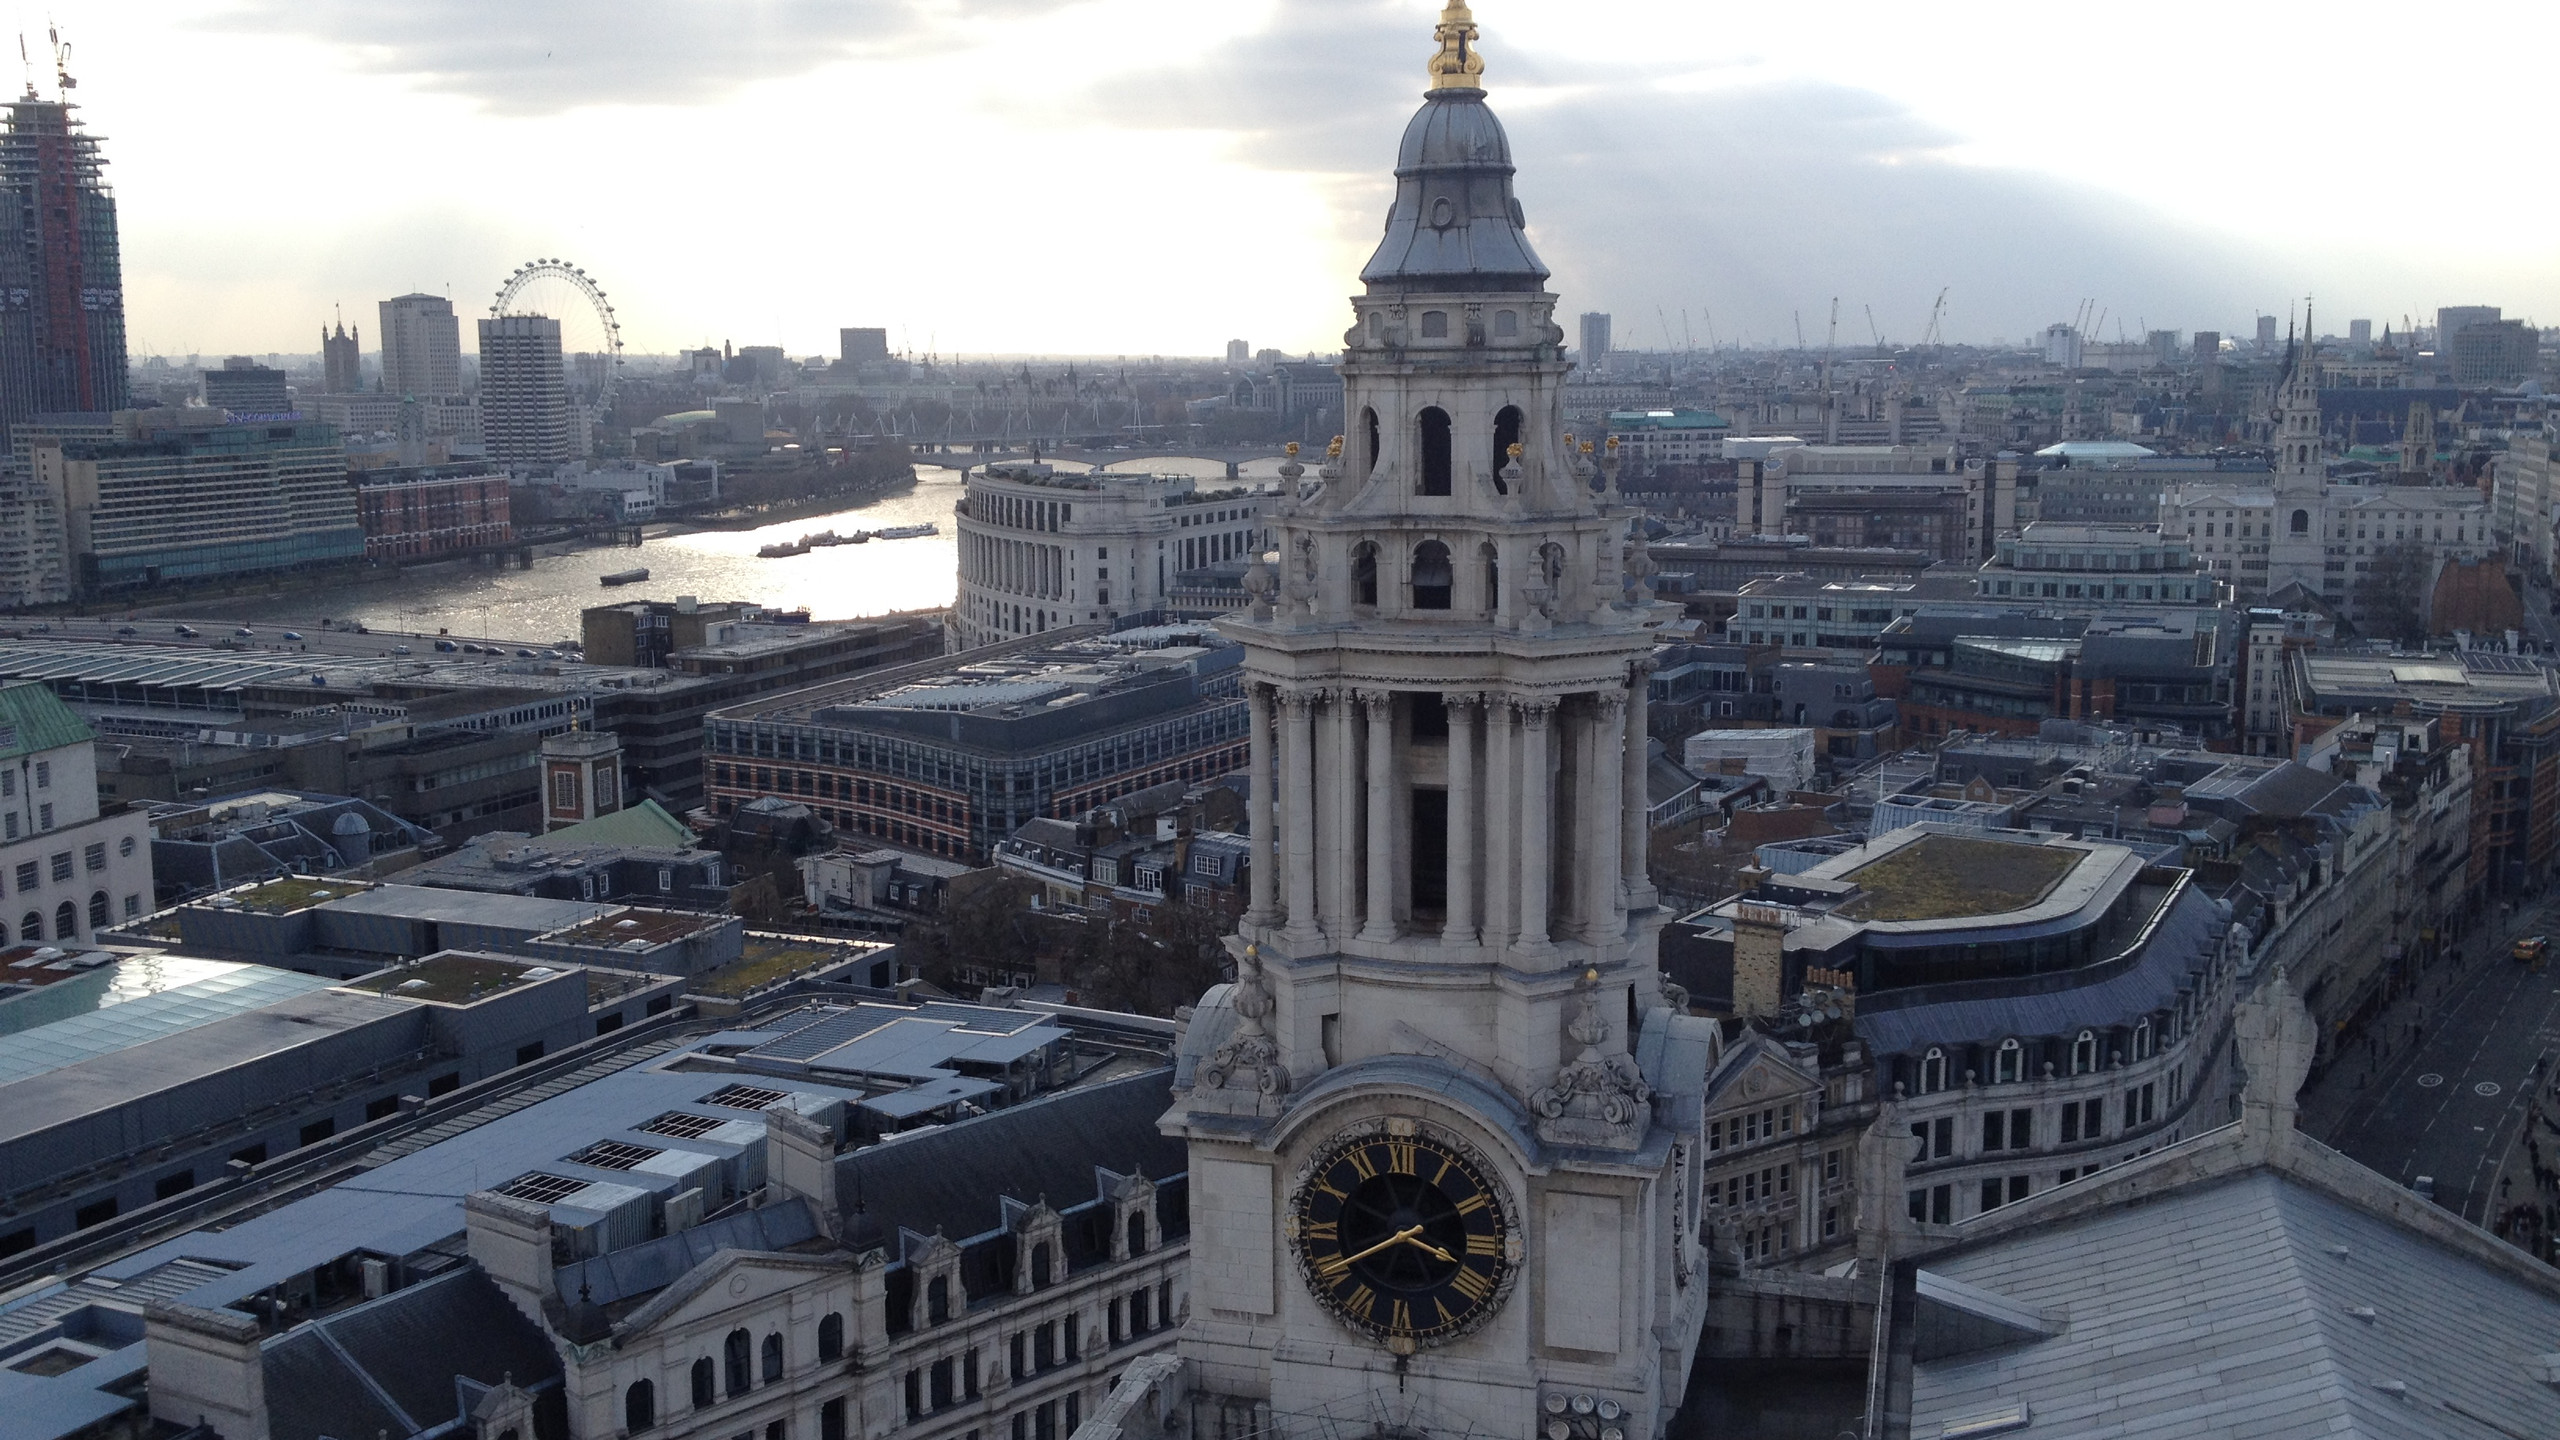 From the top of St. Paul's Cathedral with the Thames River in the background, London